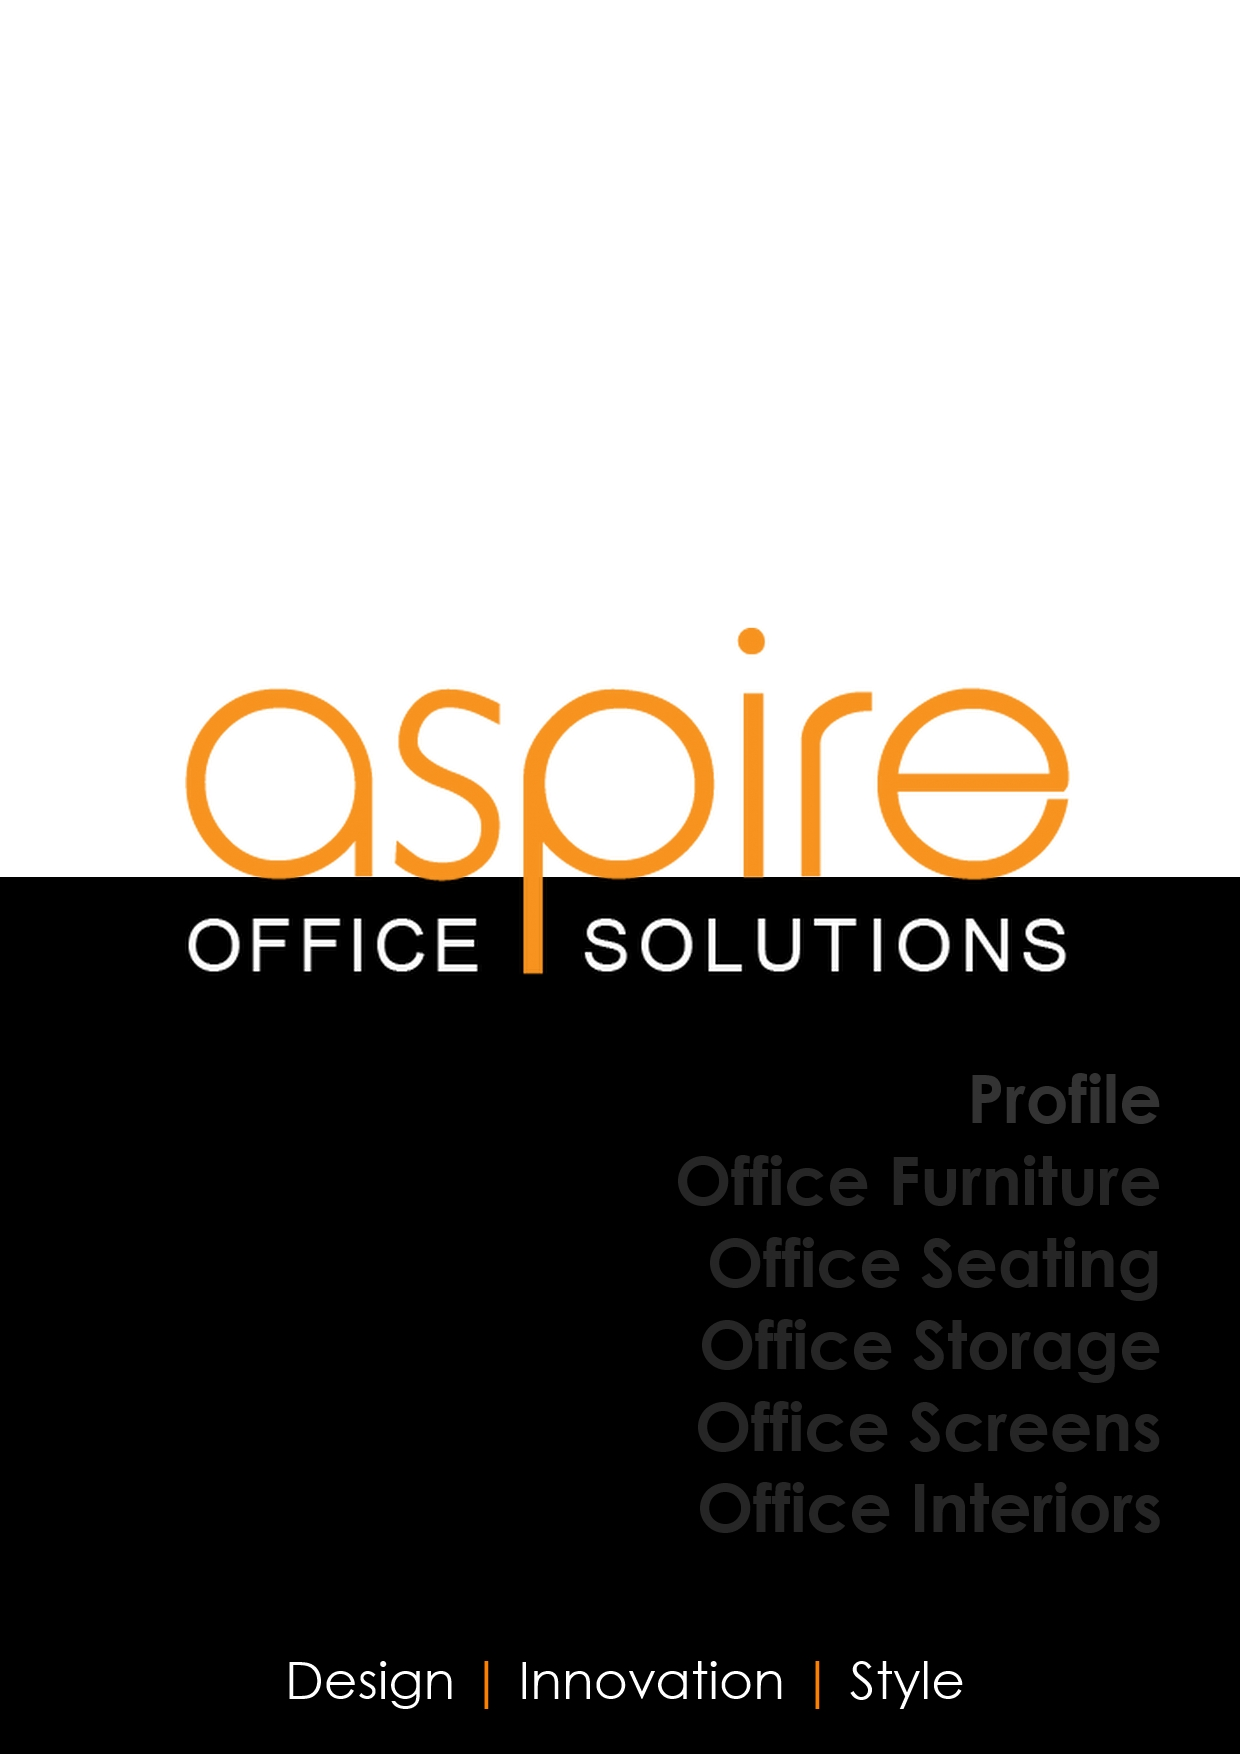 1_Aspire_Office_Solutions_-_Profile